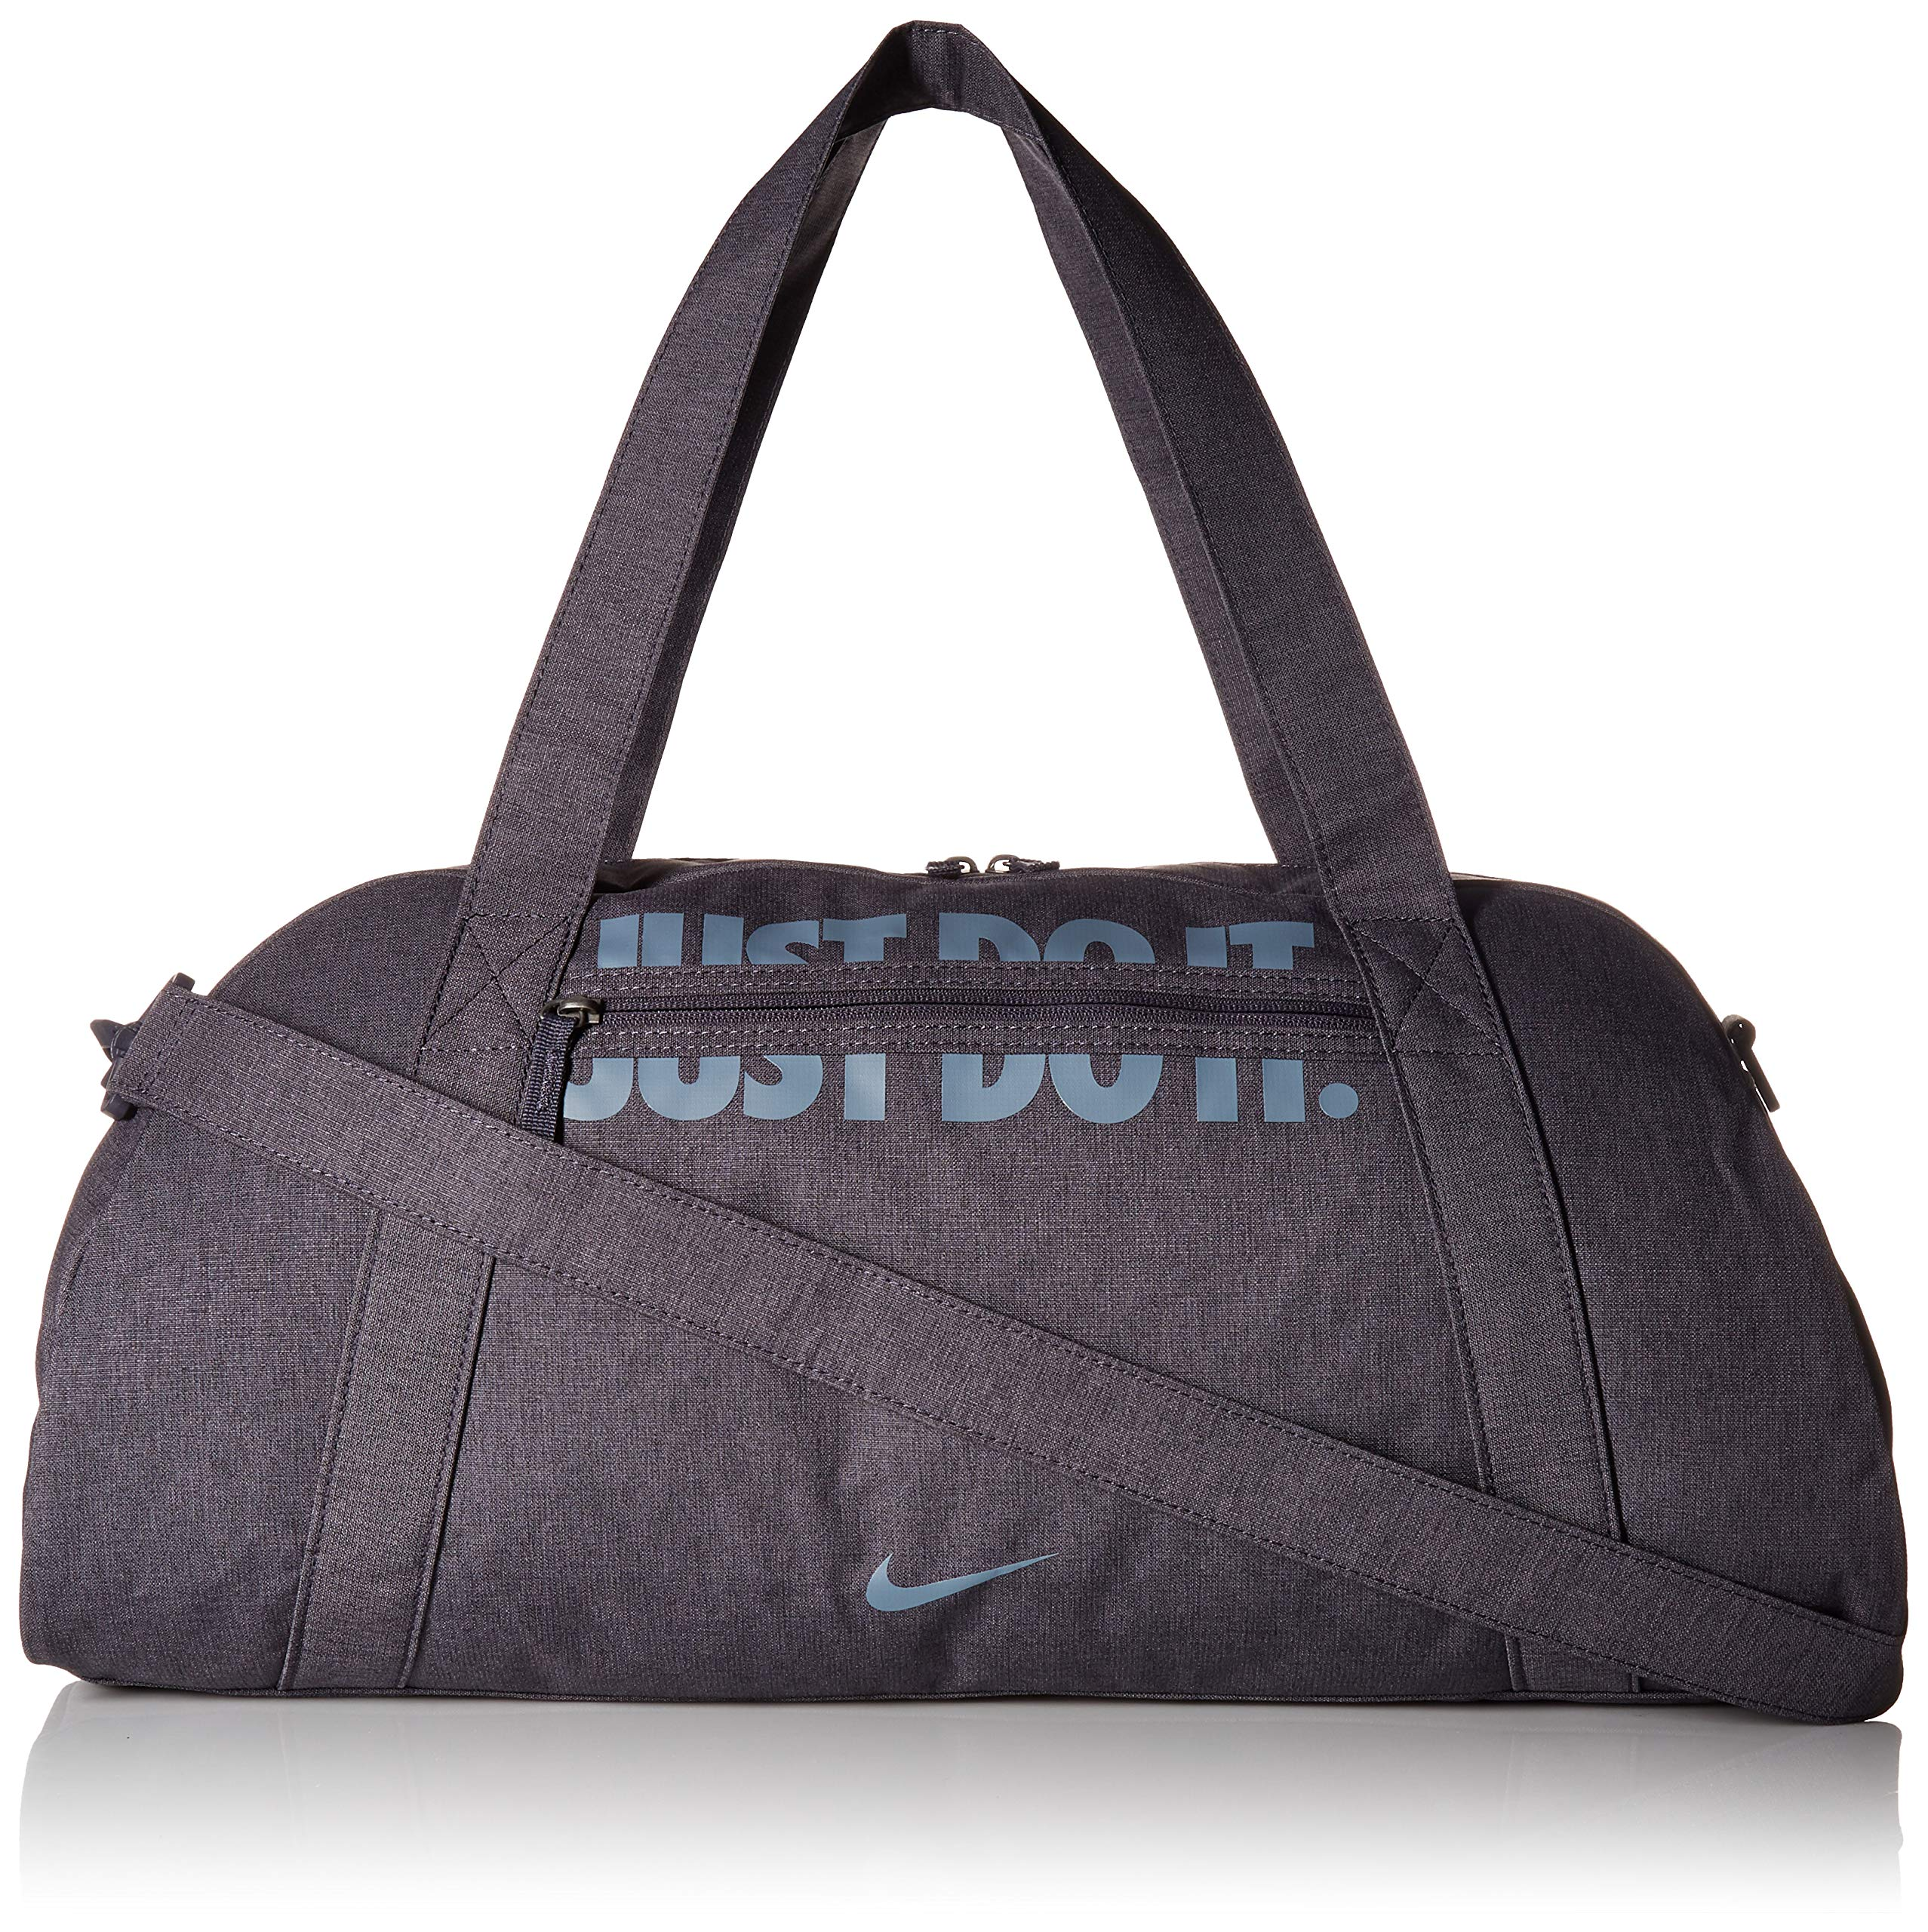 Women's Nike Gym Club Training Duffel Bag (One Size, Gridiron/Ashen Slate) by Nike